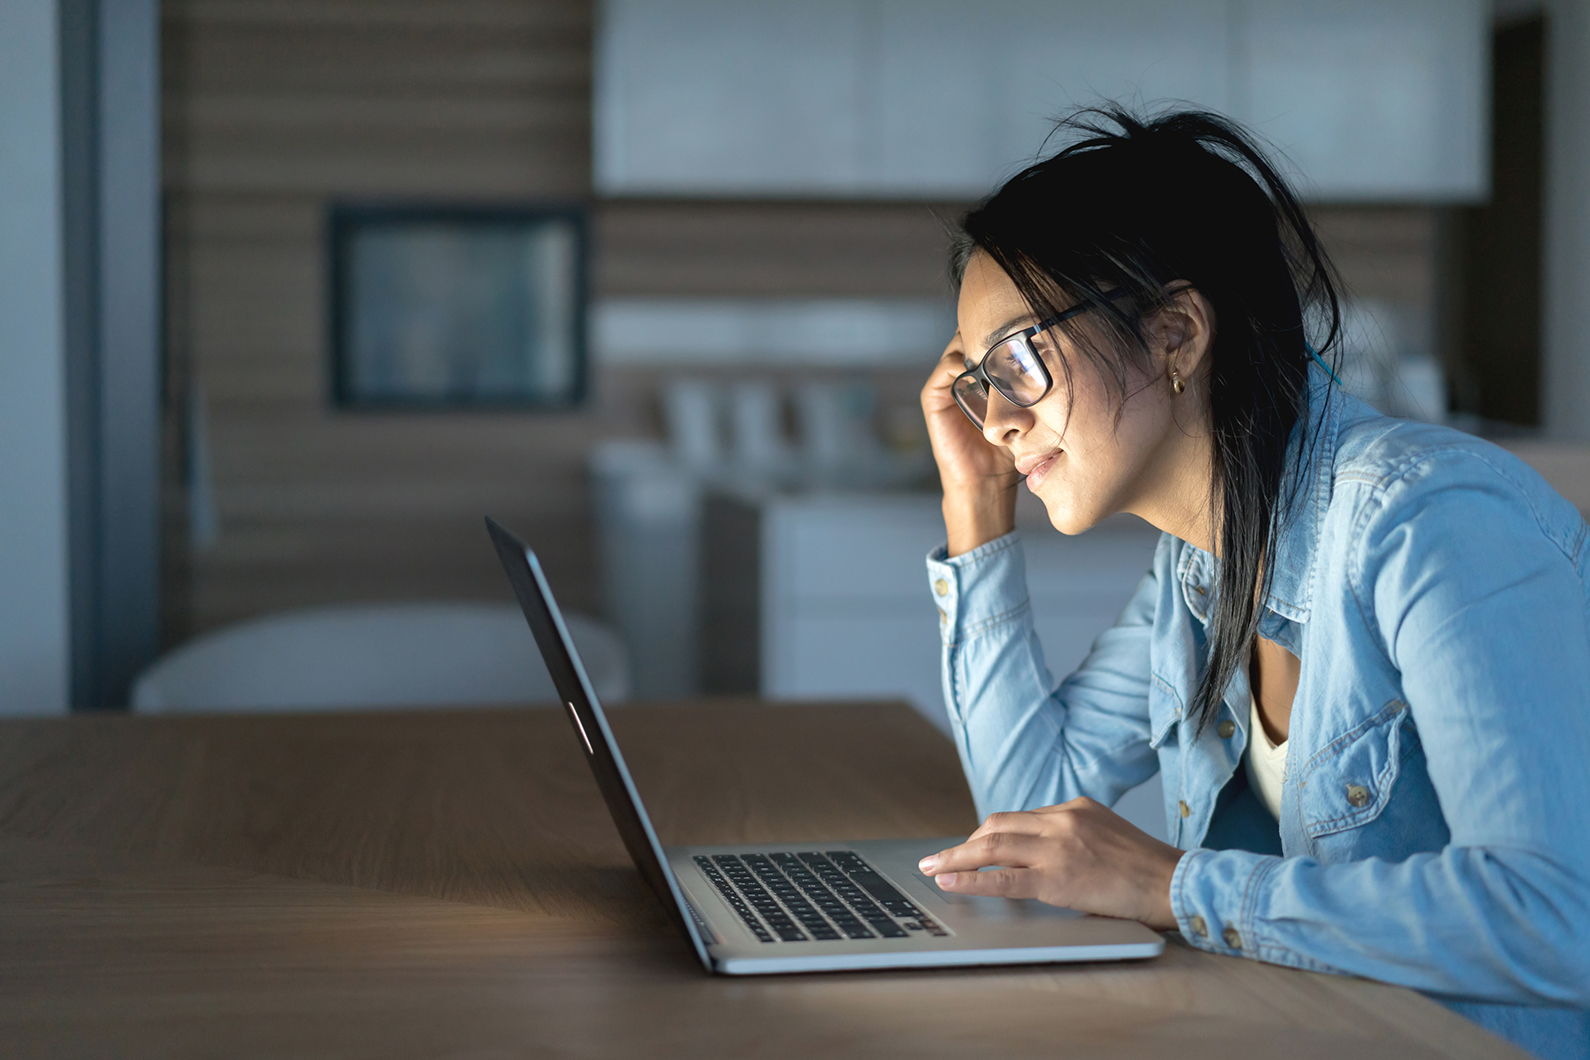 Woman at home on laptop